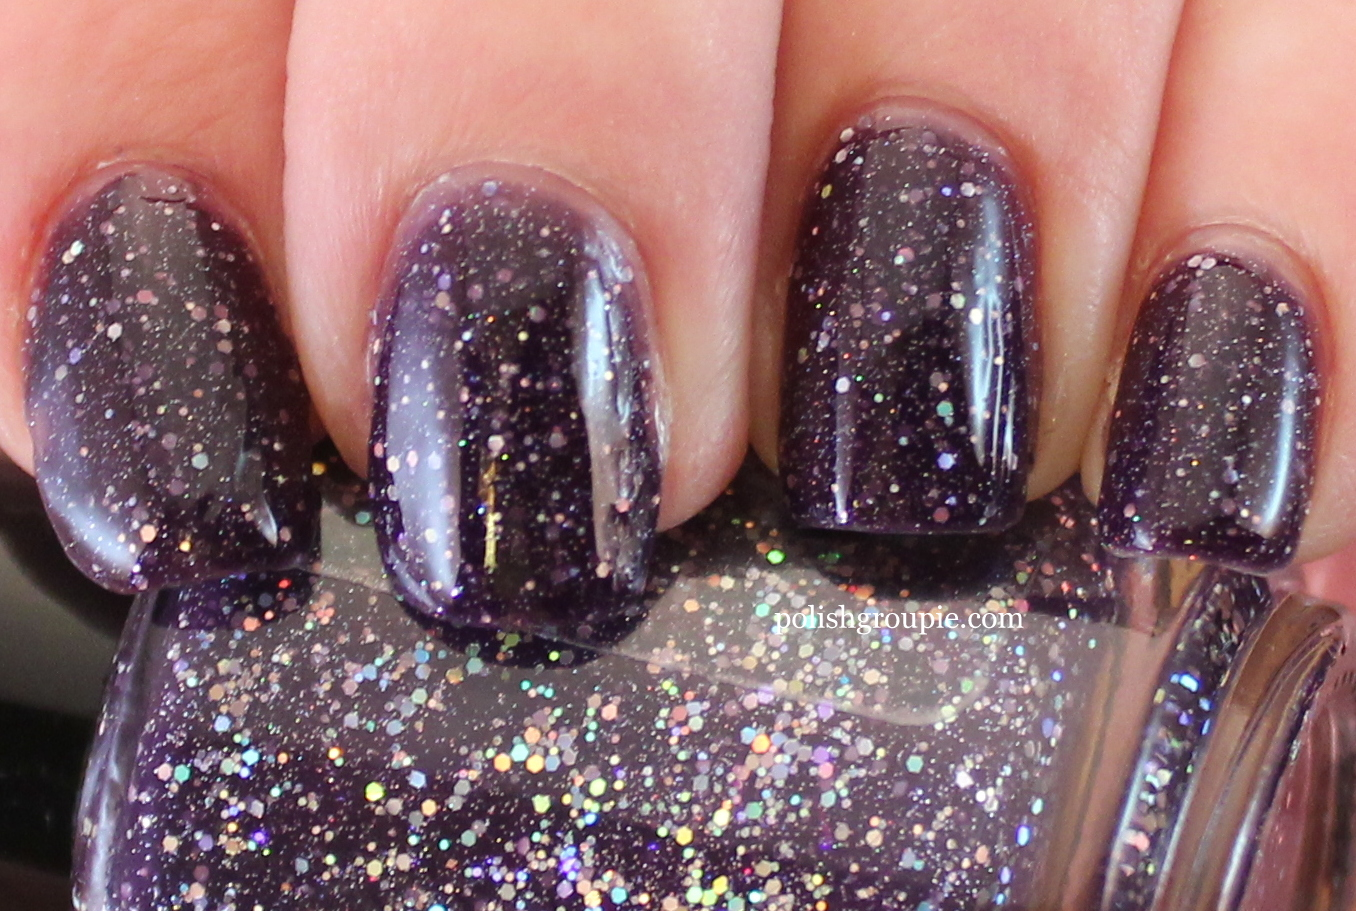 KBShimmer Witch Way? | Polish Groupie